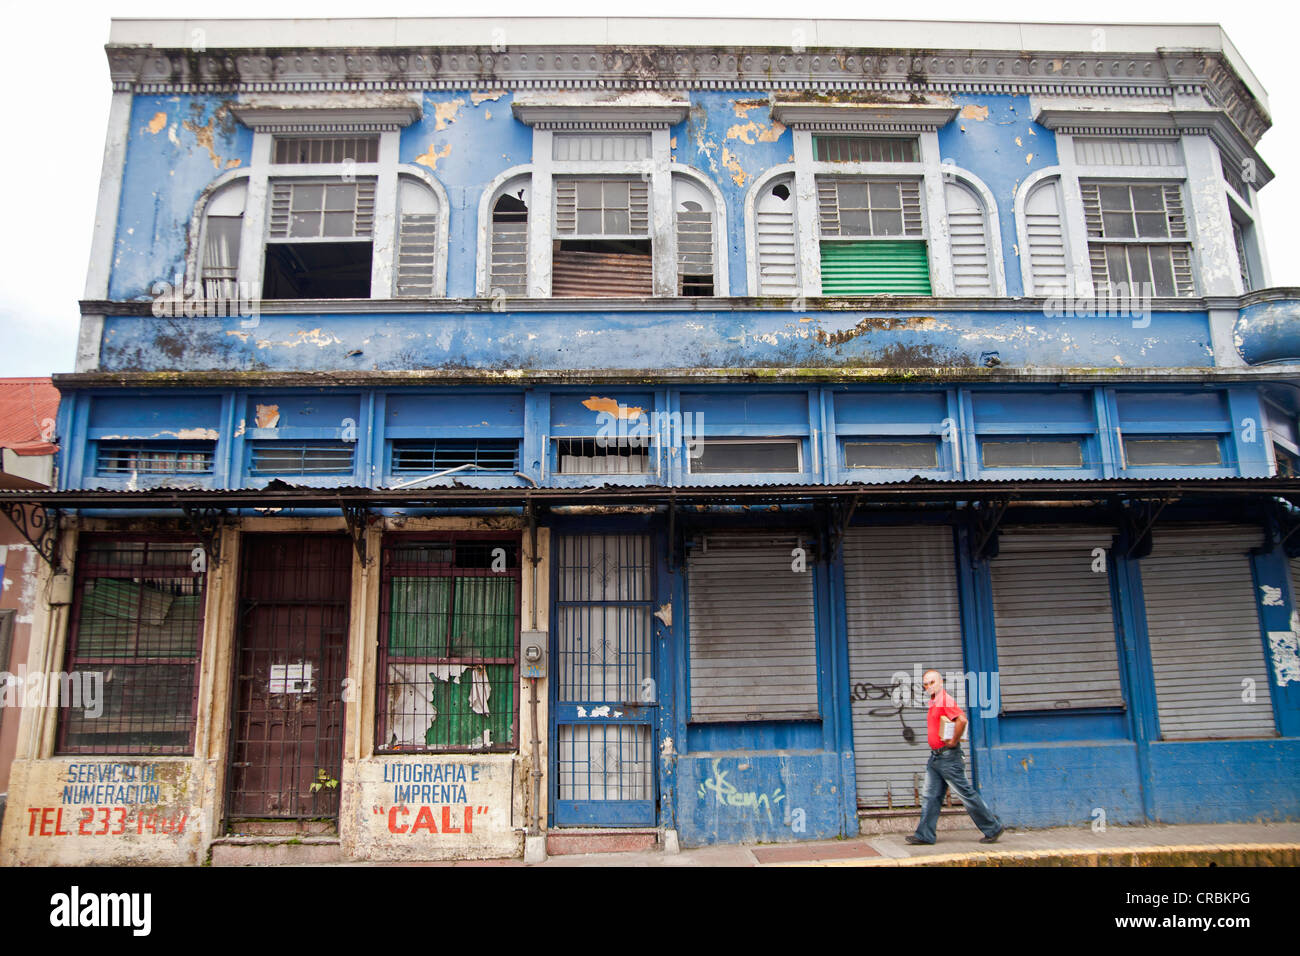 Lone passerby walking in front of a dilapidated building in the town centre of San Jose, Costa Rica, Central America - Stock Image